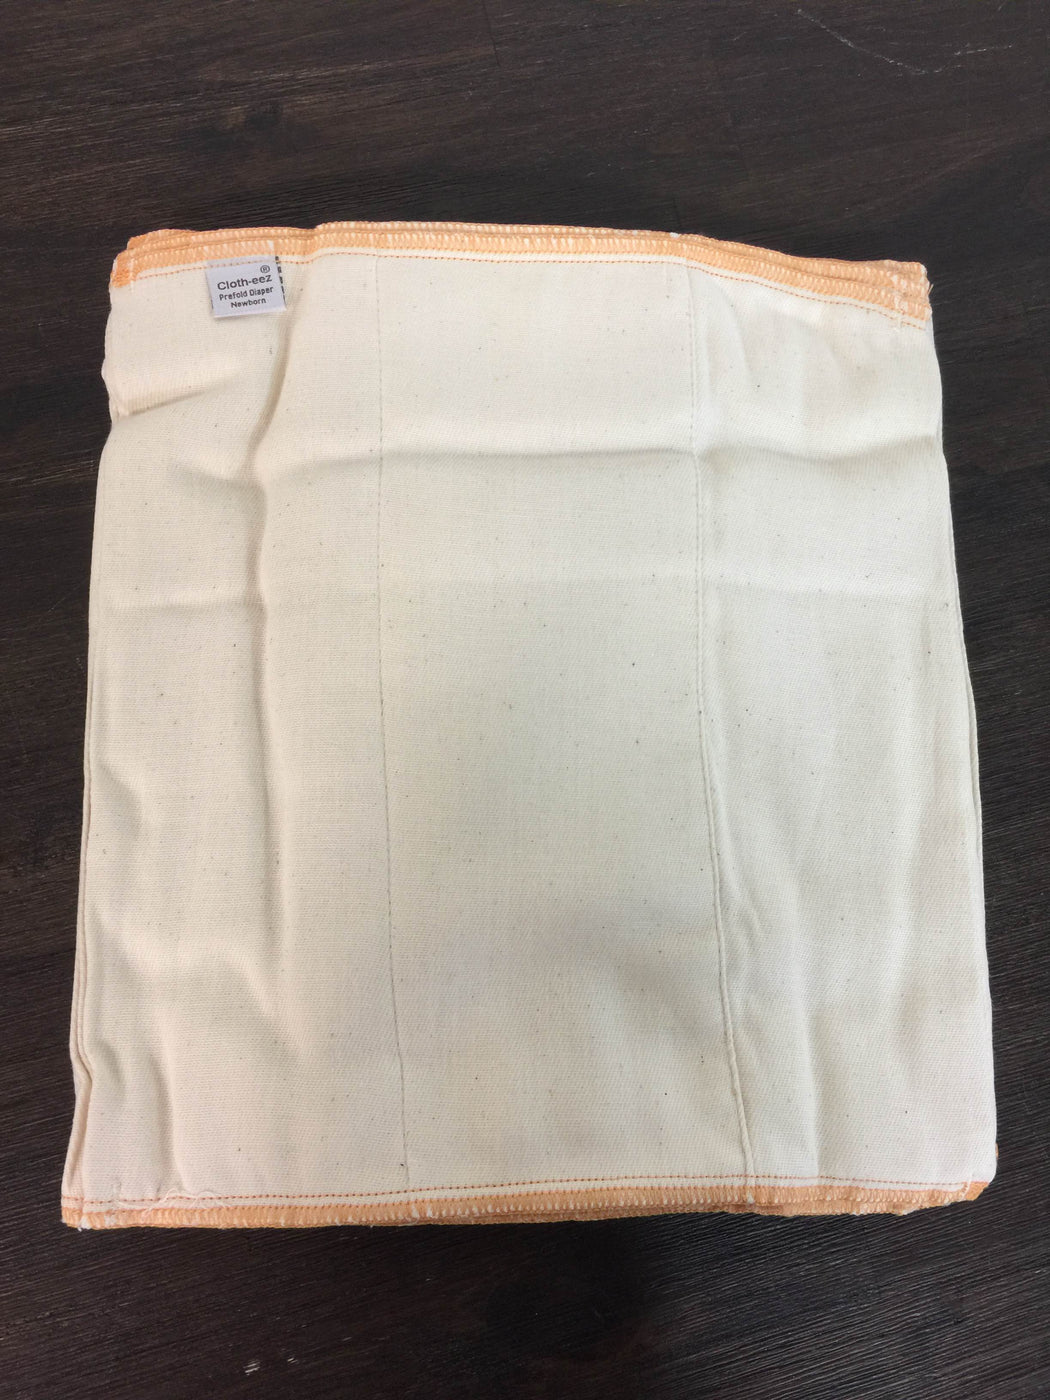 secondhand Cloth-eez Prefold Diapers